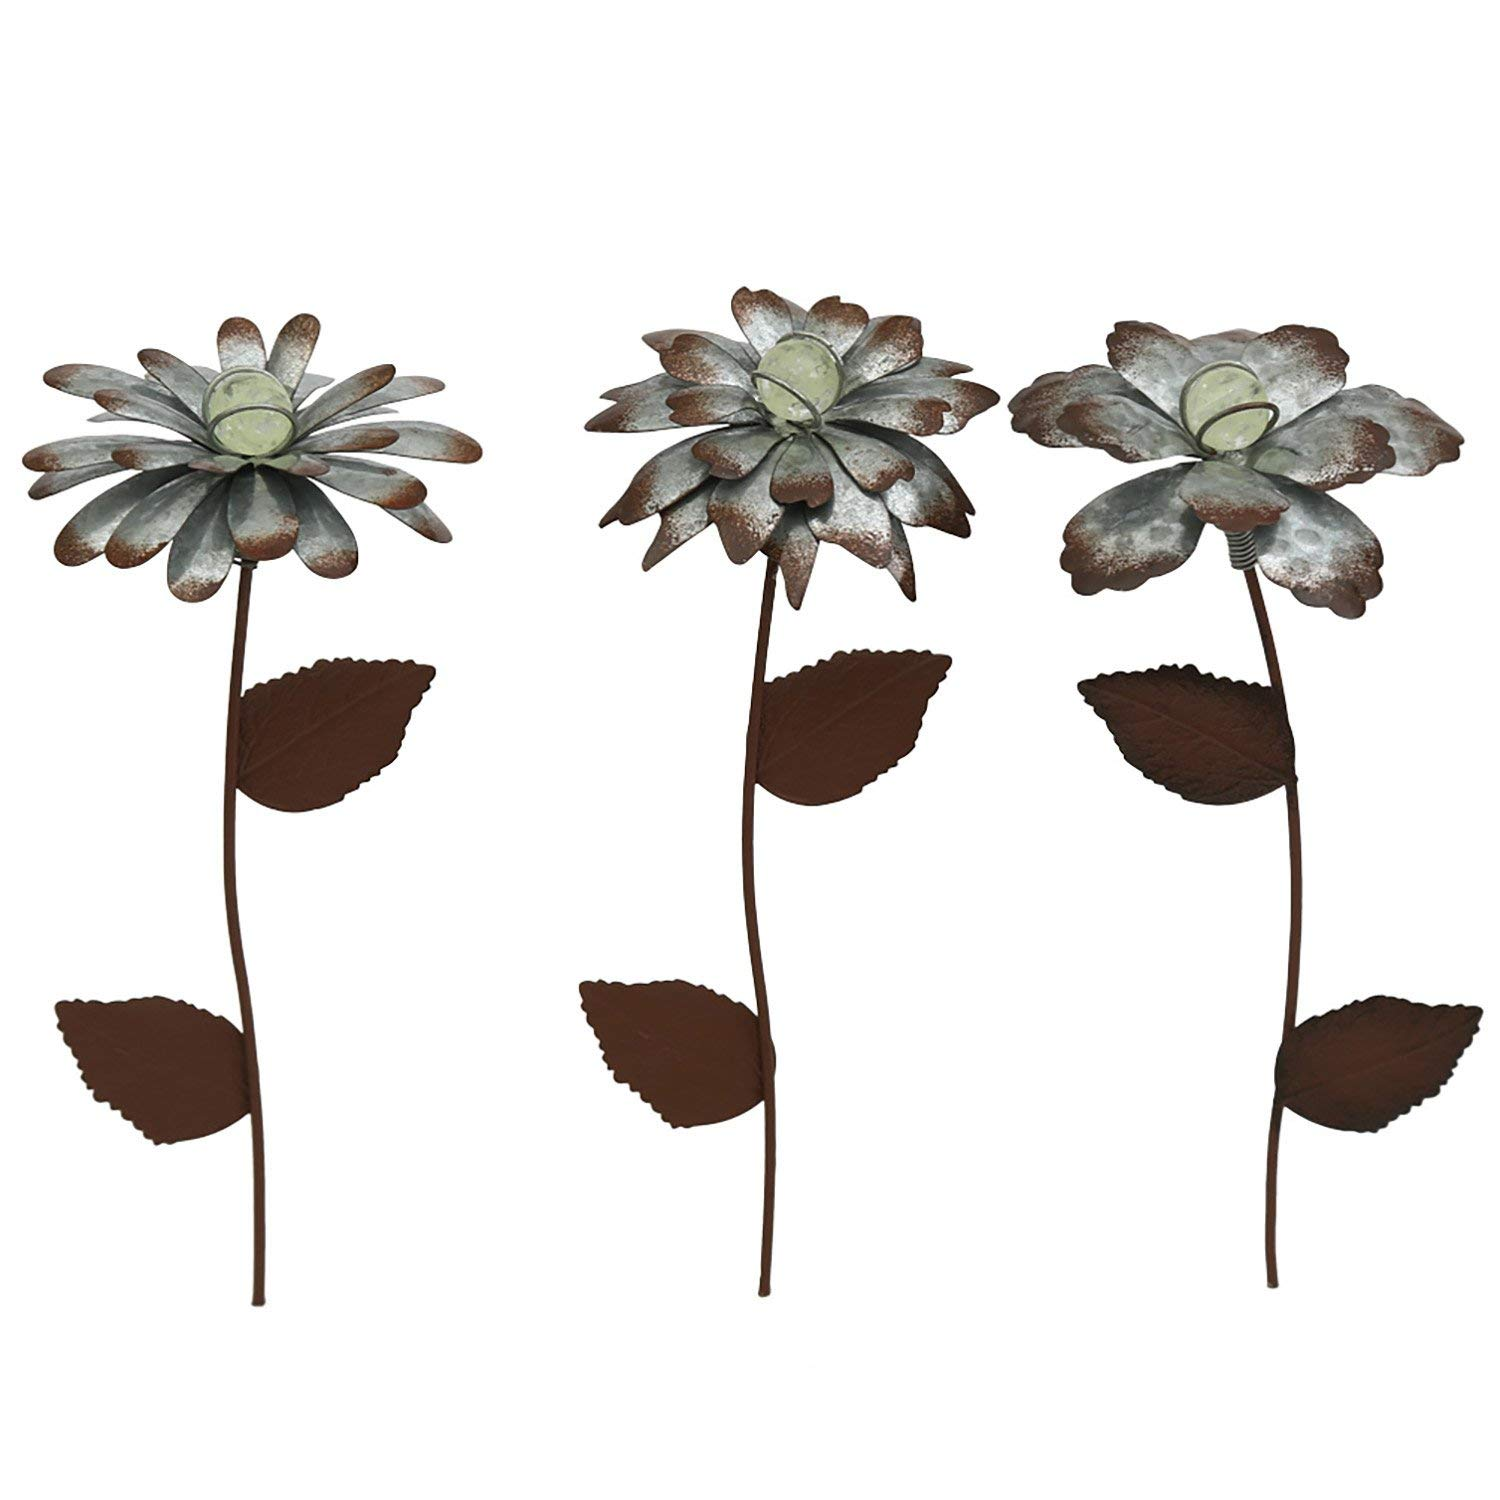 """Cedar Home Galvanized Floral Garden Stake Outdoor Glow in Dark Plant Pick Water Proof Metal Stick Art Ornament Decor for Lawn Yard Patio, 4""""W x 1.5""""D x 14""""H, 3 Set"""